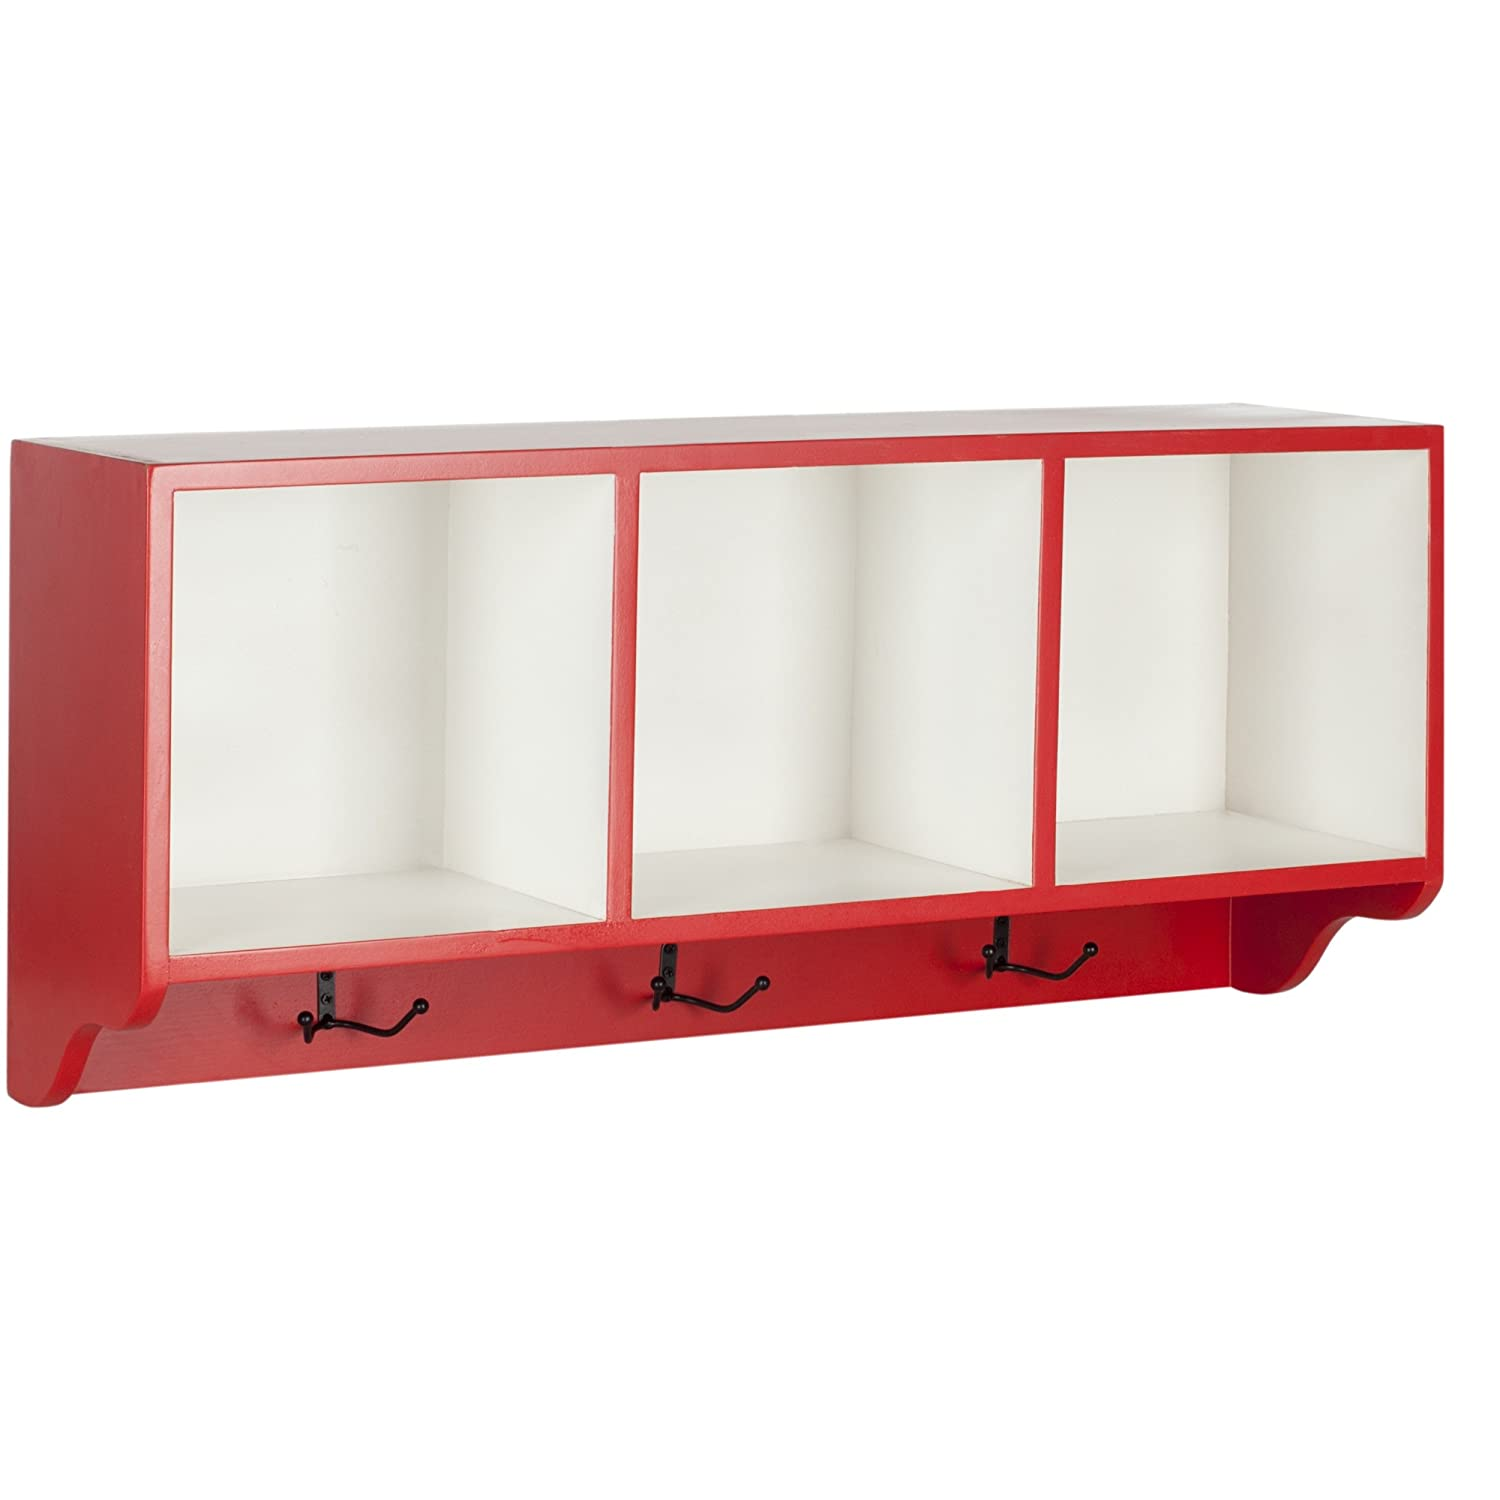 Safavieh American Homes Collection Alice Hot Red and White Wall Shelf AMH6566N